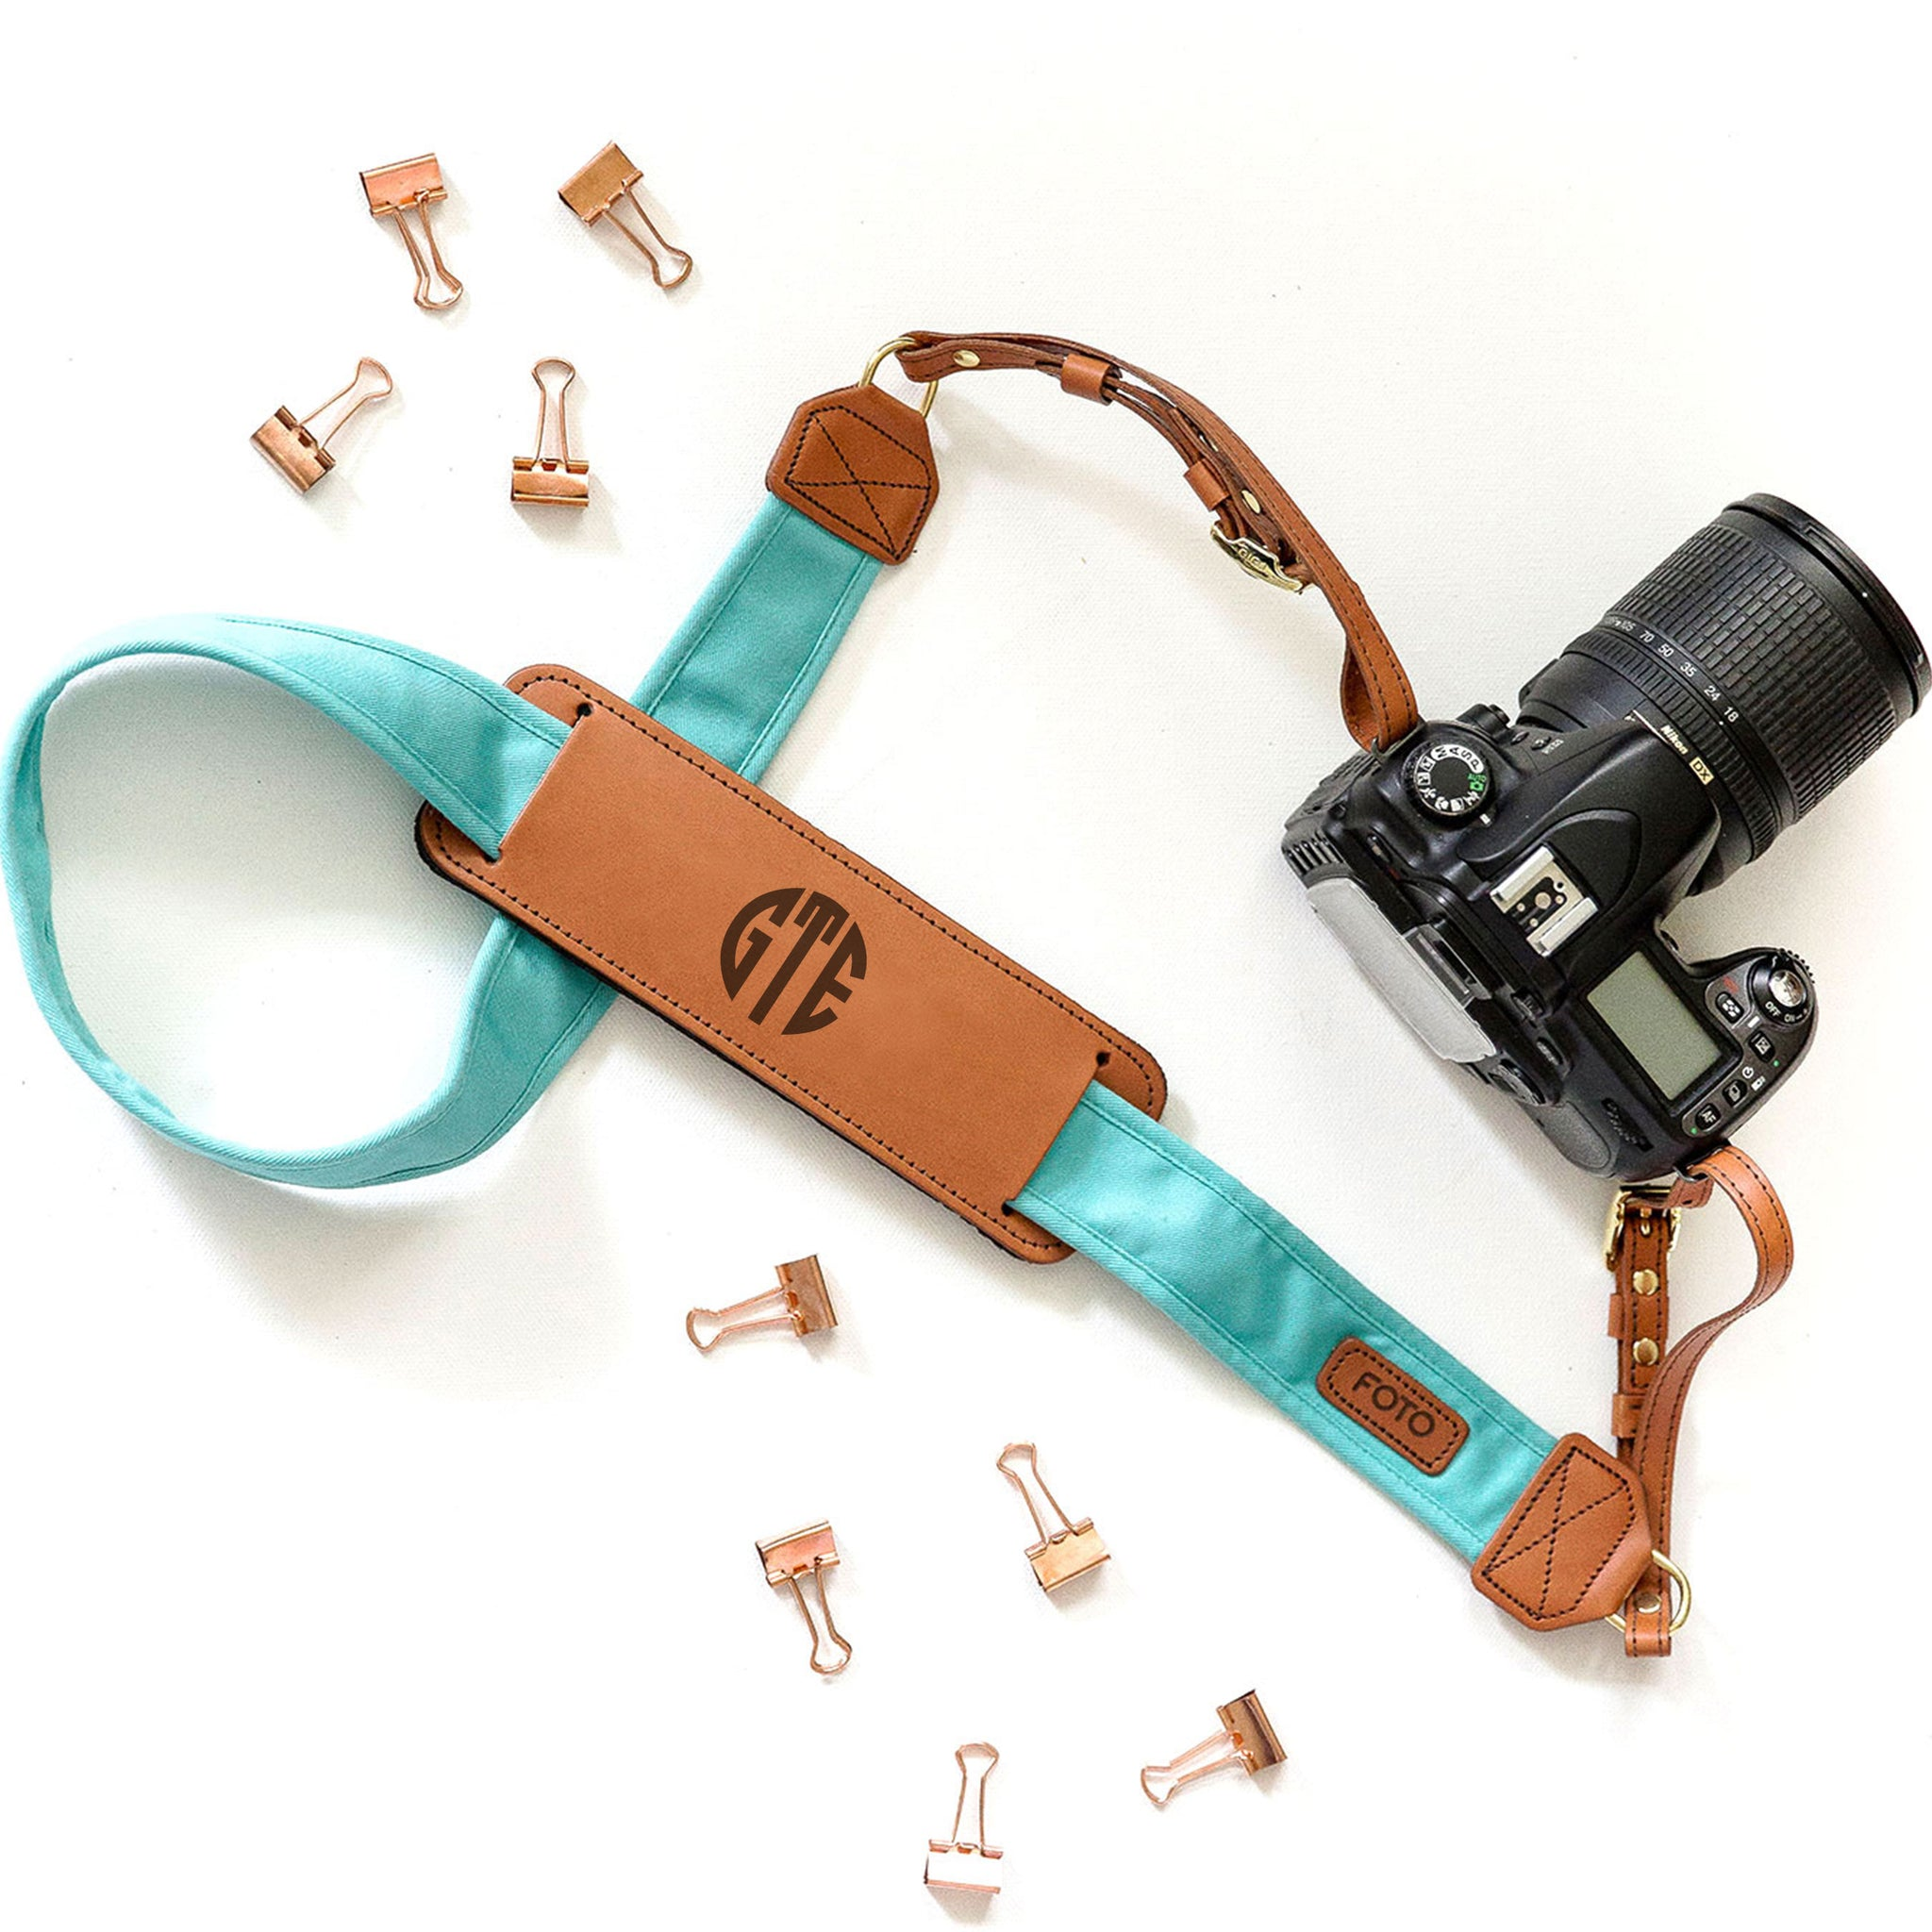 FOTO Blog   Gifts for Her